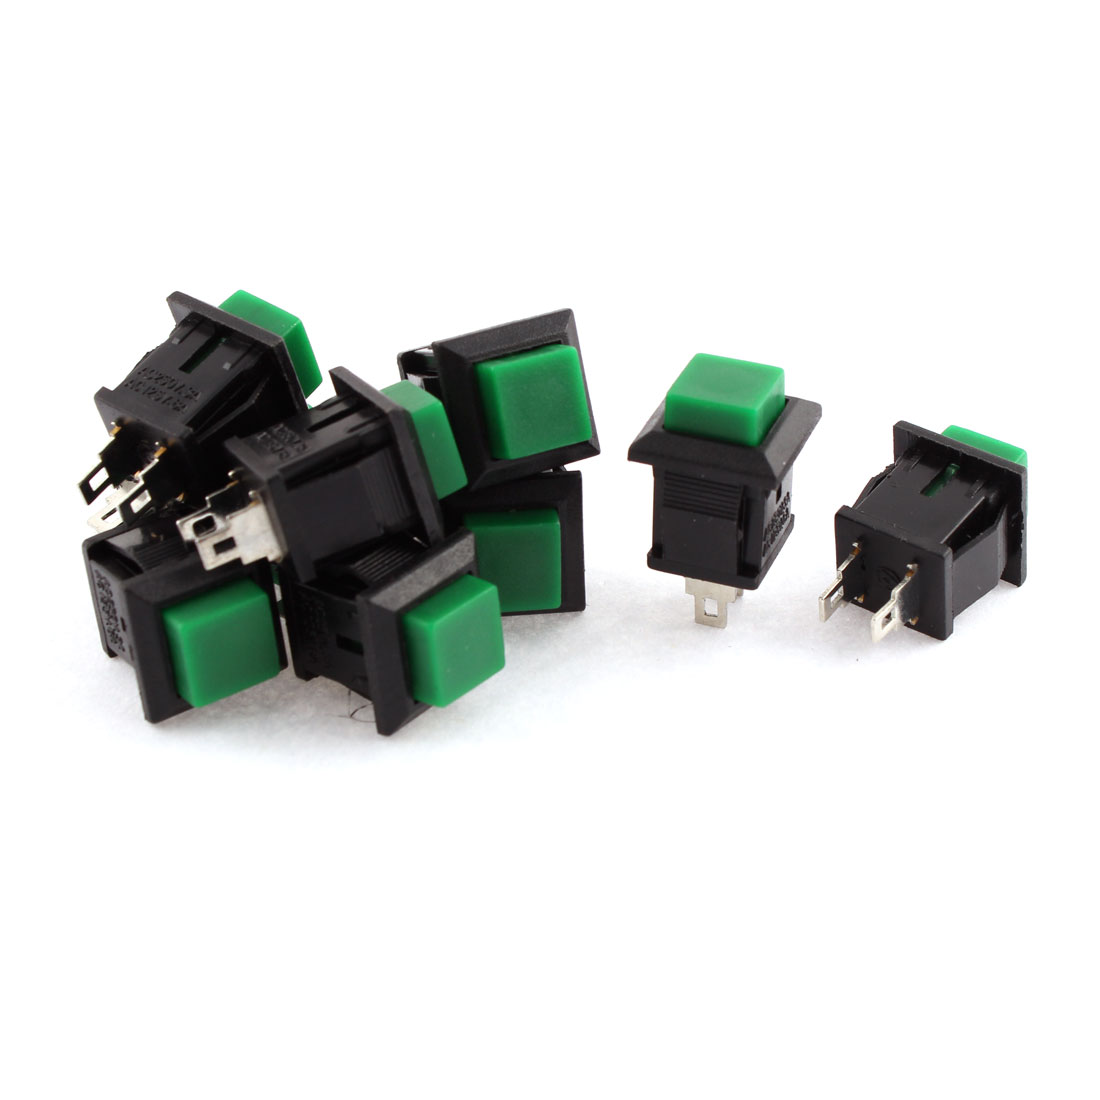 10Pcs SPST Momentary Green Square Pushbutton Switch AC 250V 3A 125V 6A